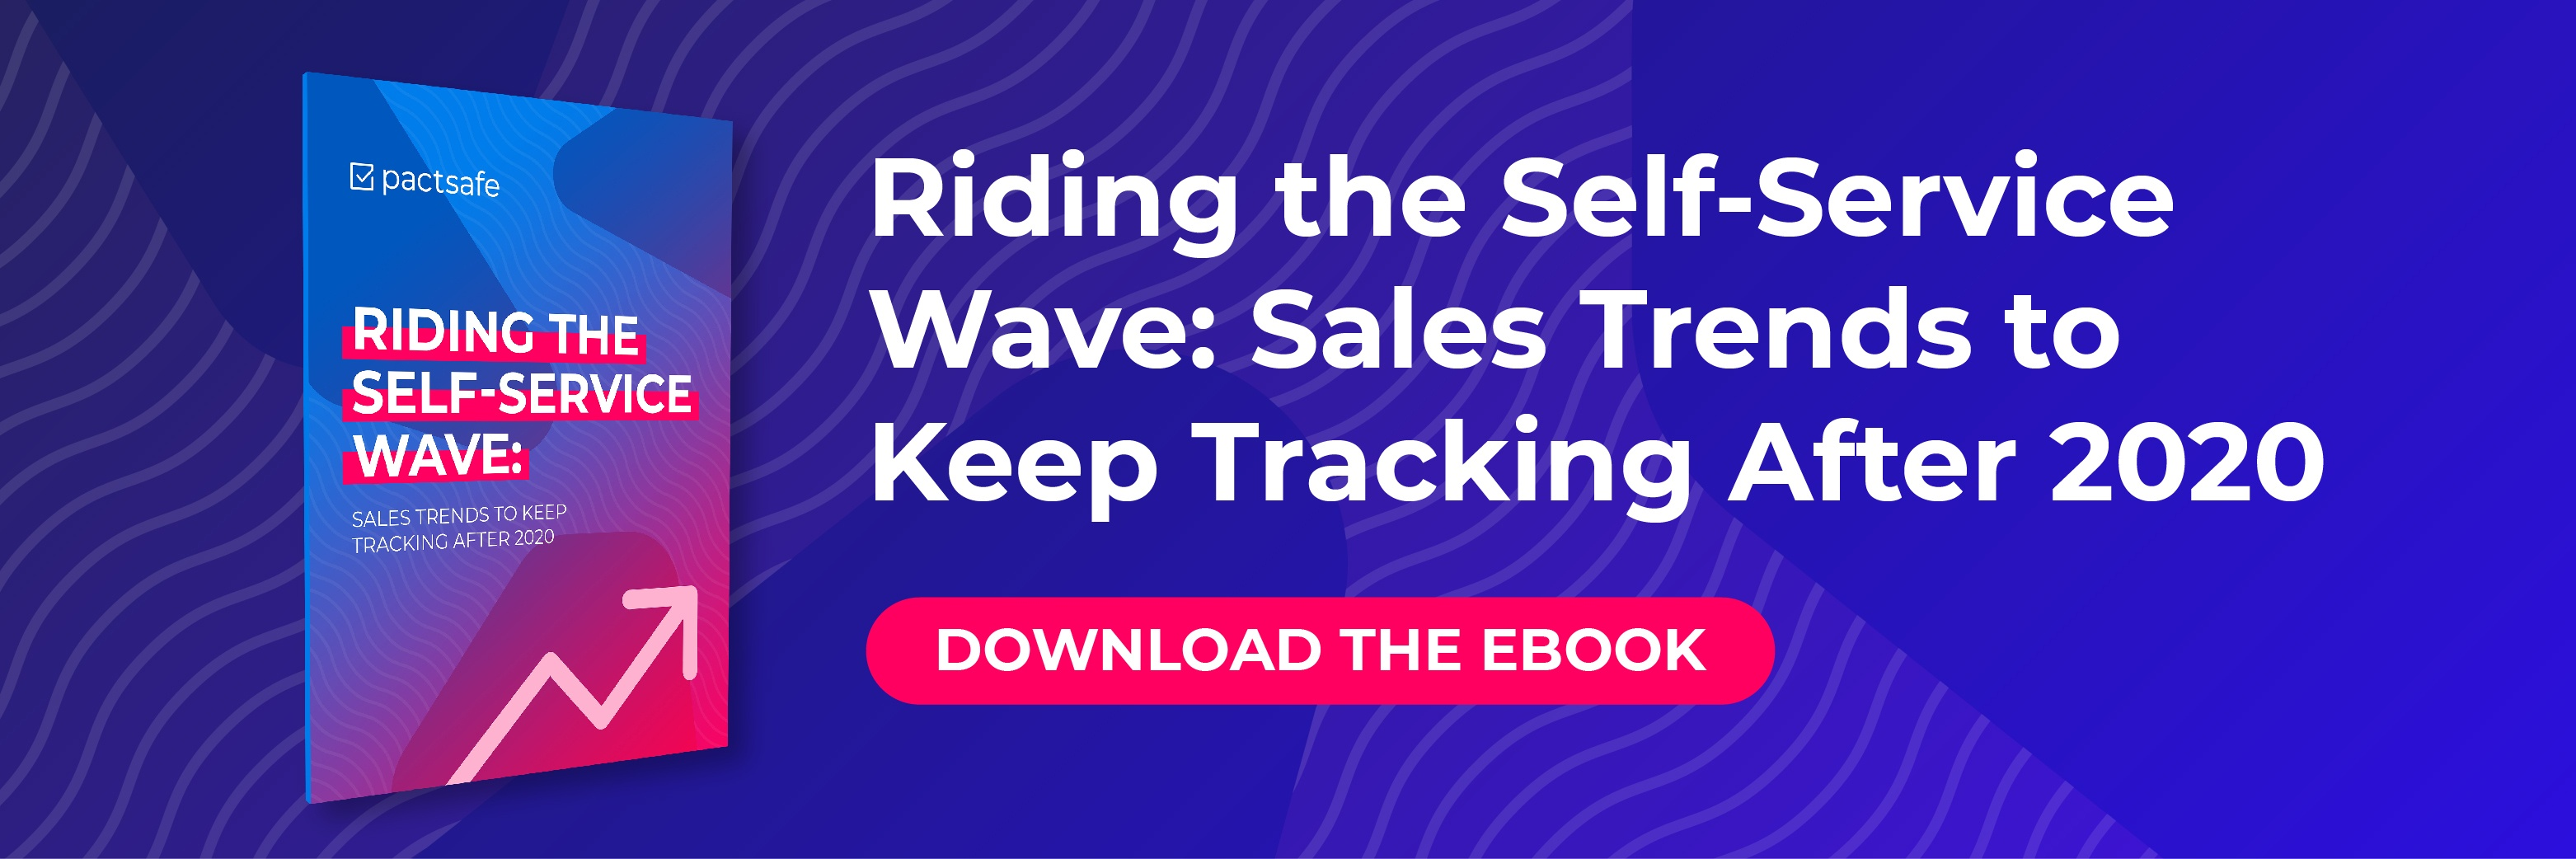 Download Riding the Self-Service Wave